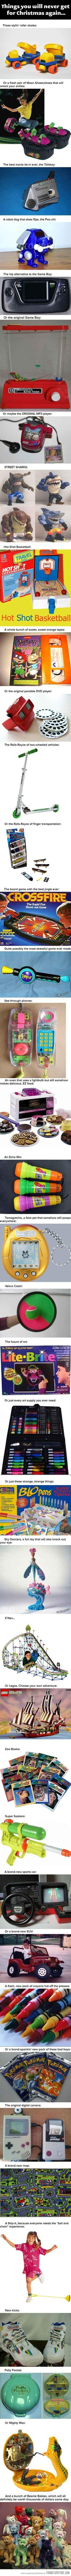 I had so many of these things. Also, Stretch Armstrong, X2L, and Speak n Spell <3